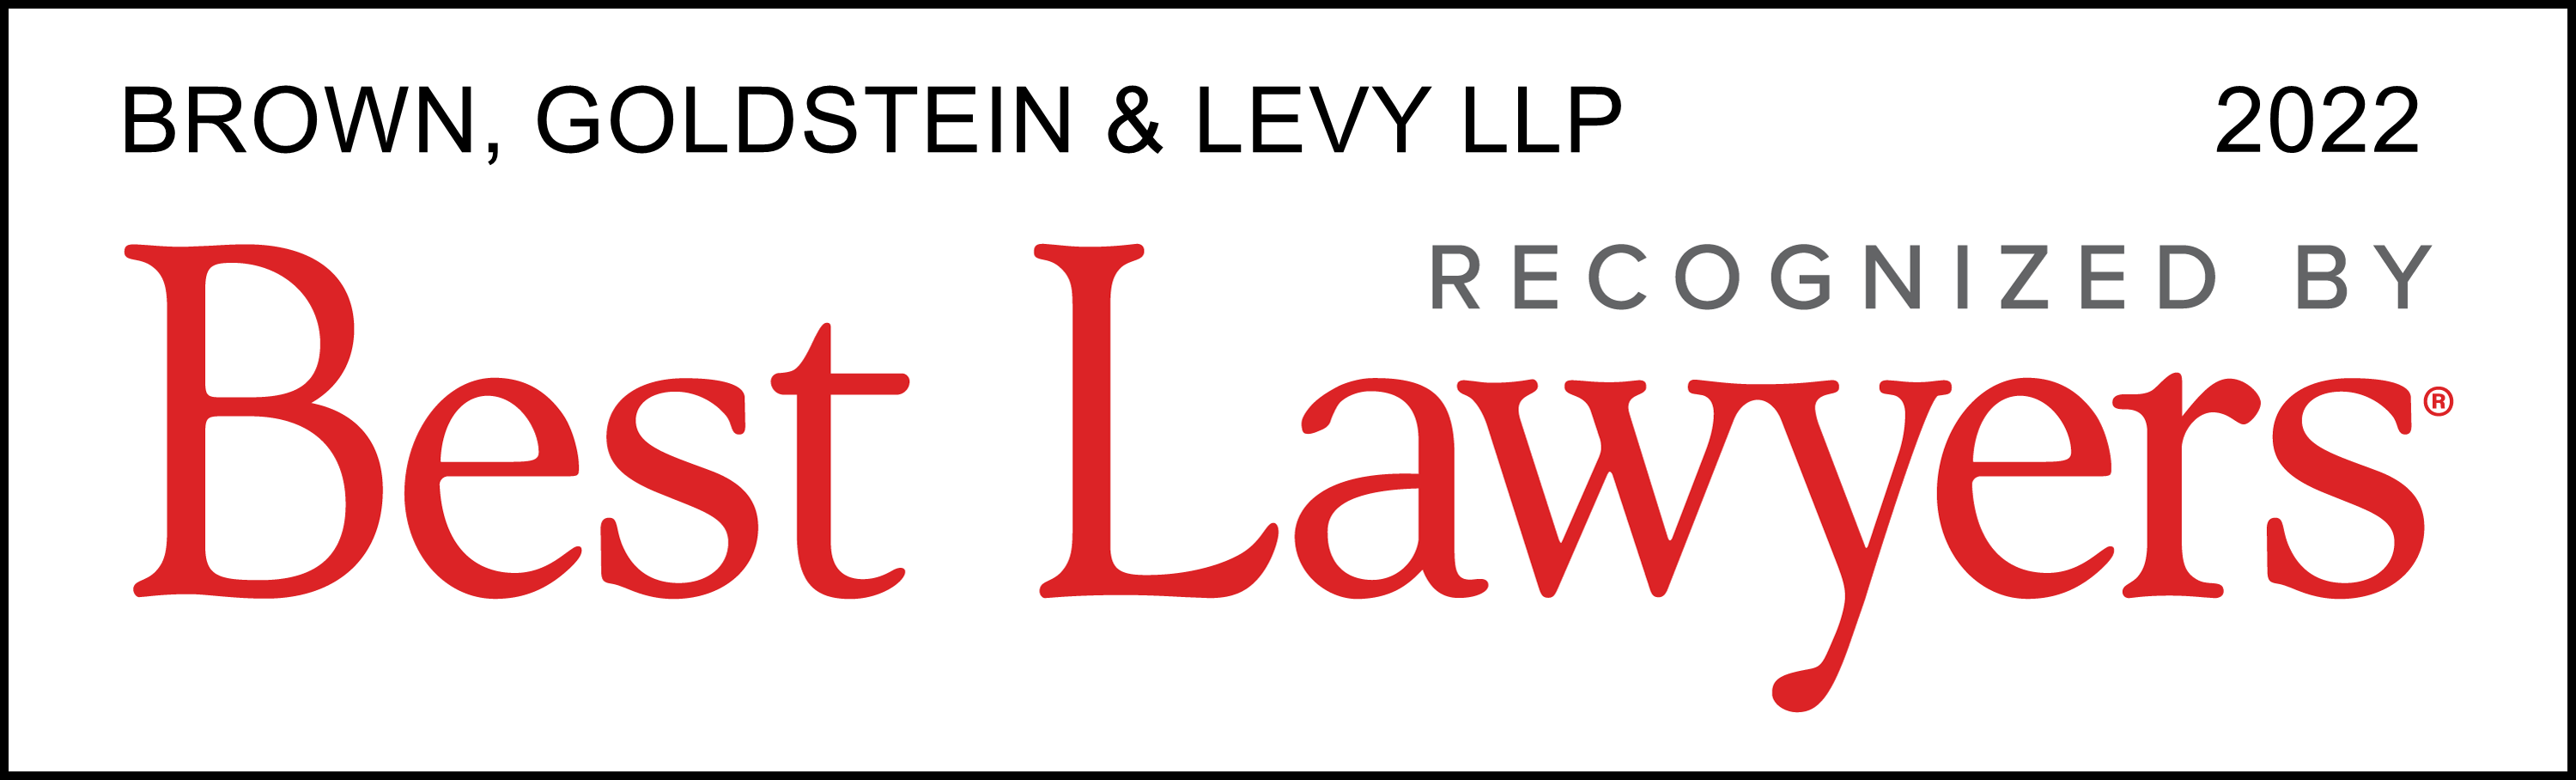 Brown Goldstein & Levy LLP, Recognized by Best Lawyers 2022